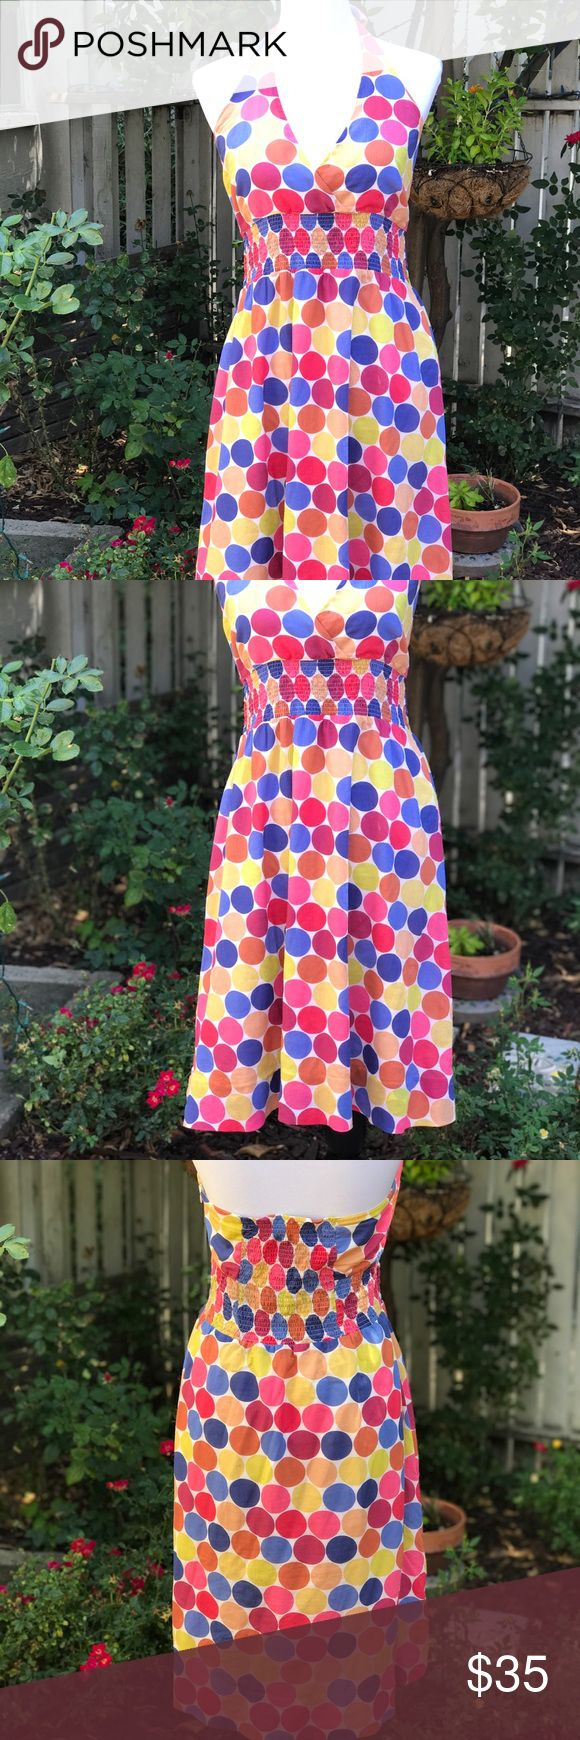 """Maeve large multi polka dot halter dress Anthropologie Maeve large polka dot w/multi colors. This is a fun easy weekender dress! Light gauze cotton material (shell/lining). They elastic rouched waist makes this dress very forgiving if you are a size or two larger up top. Little difficult to measure bust because there's no back. I'm a 36C and it fit fine. The waist is 15"""", flat, length 32"""" (from top of back). Mannequin measures 34x26x35. Measurements approx. Anthropologie Dresses"""